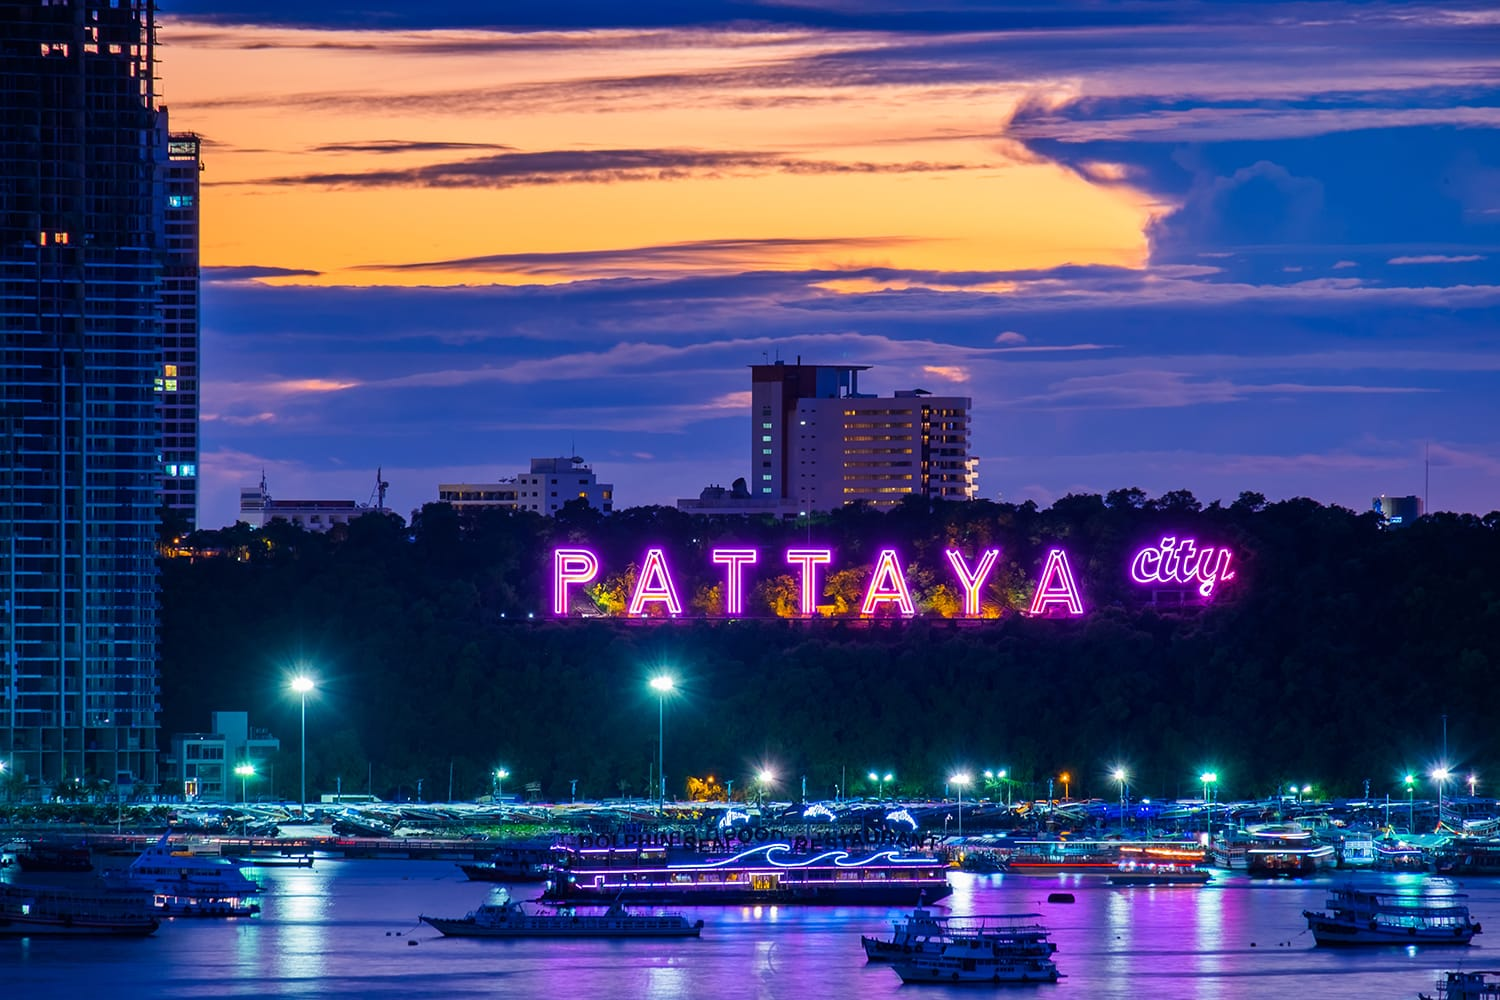 Sunset over Pattaya in Thailand